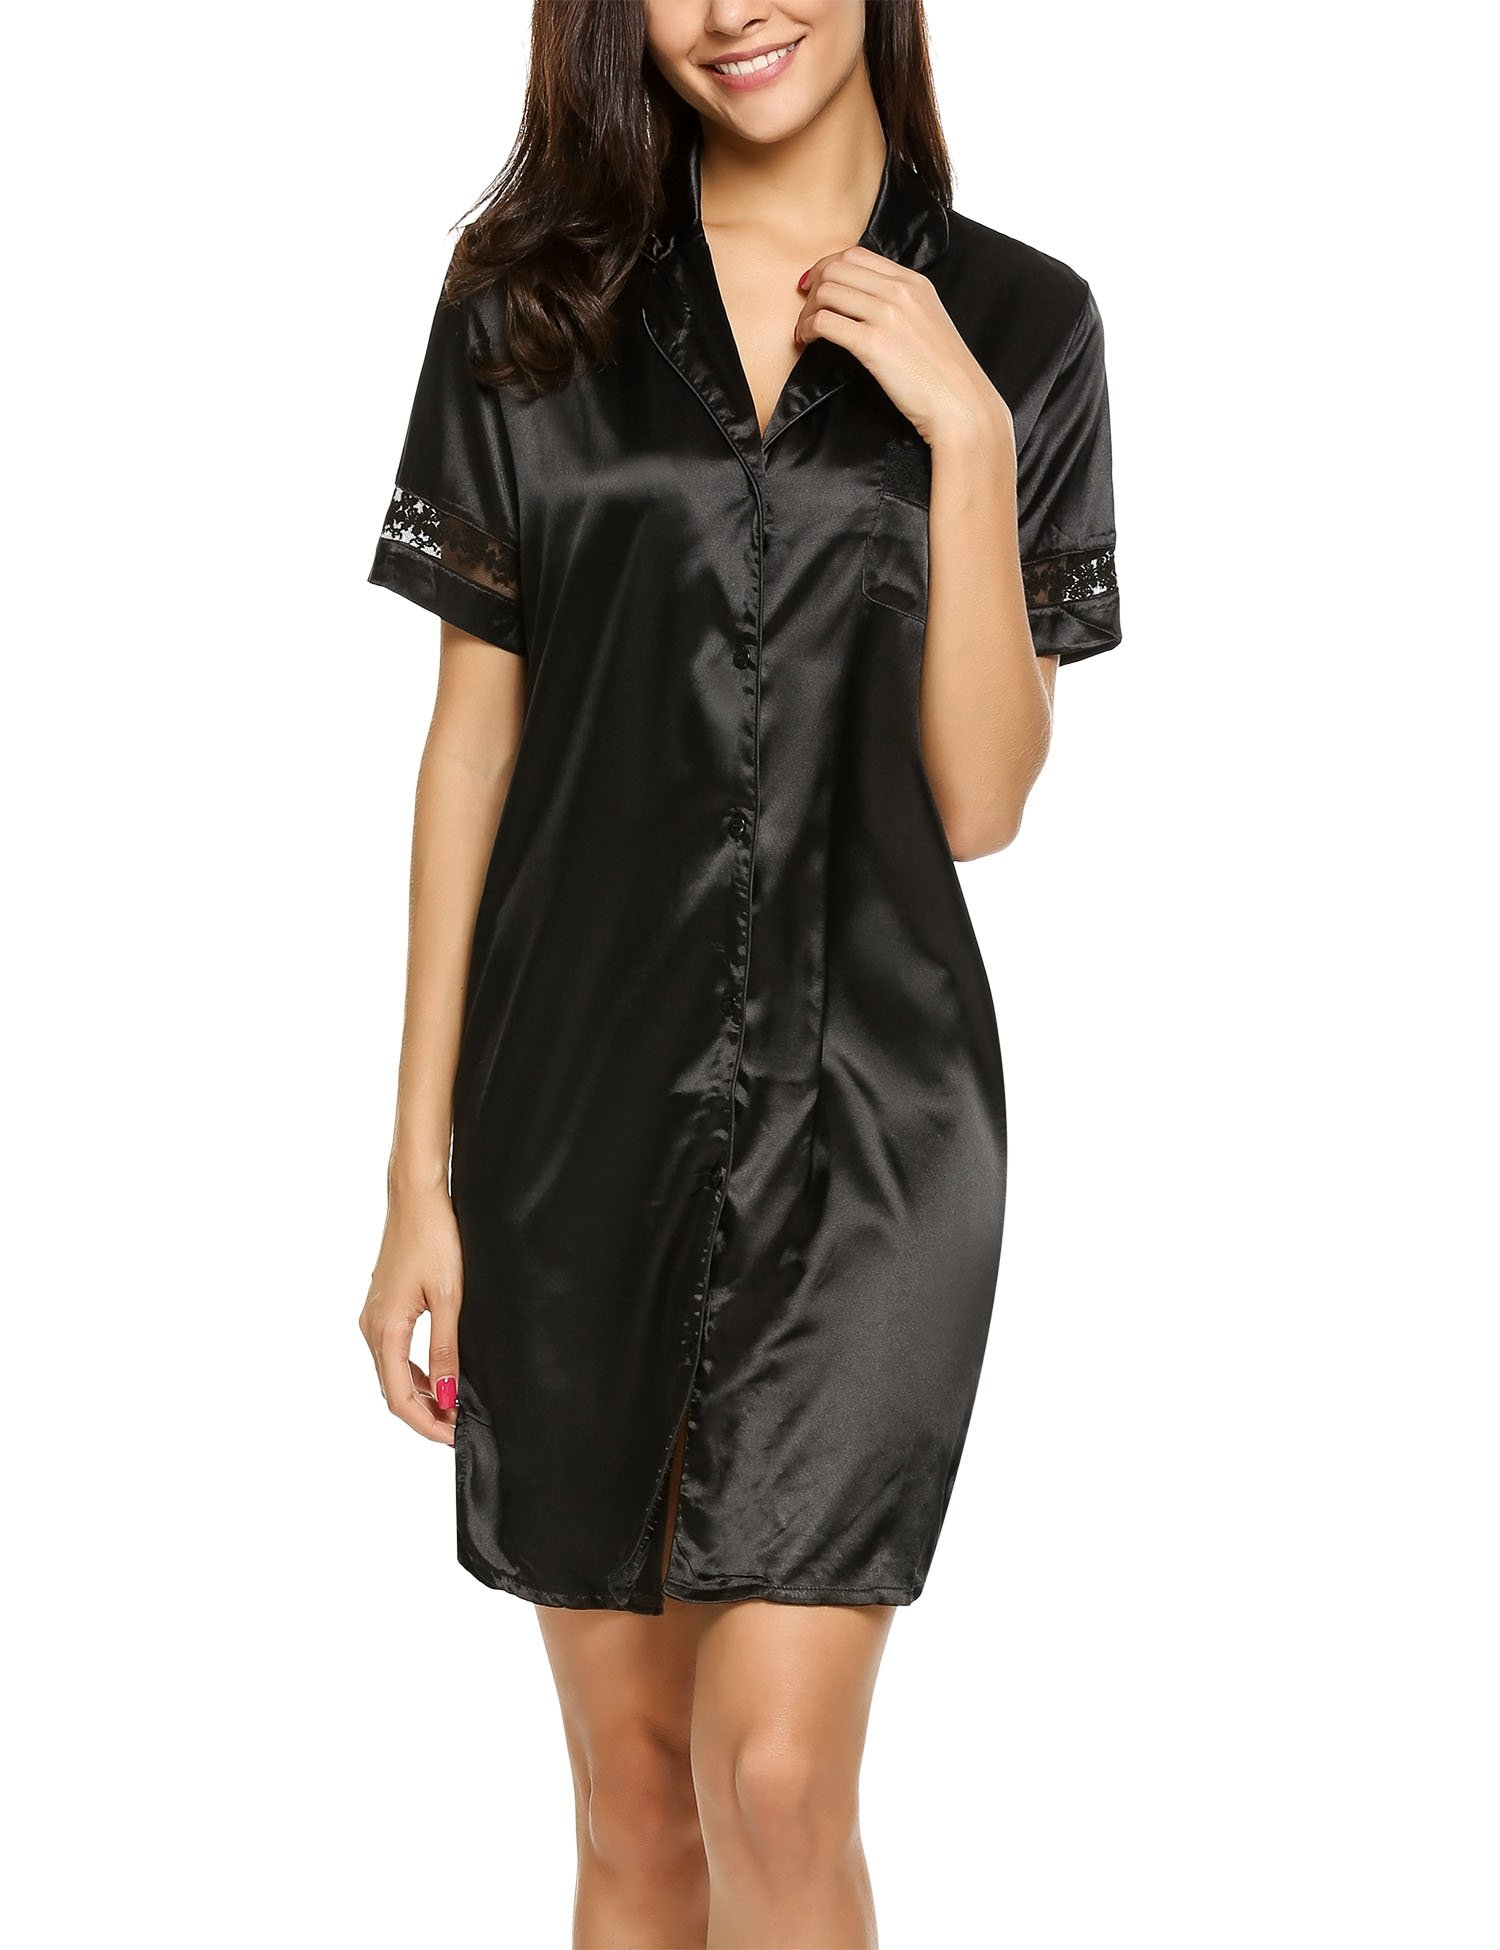 HOTOUCH Women's Above Knee Bridal Nightgown Sleep Dress With Chest Pocket Night shirt Black M